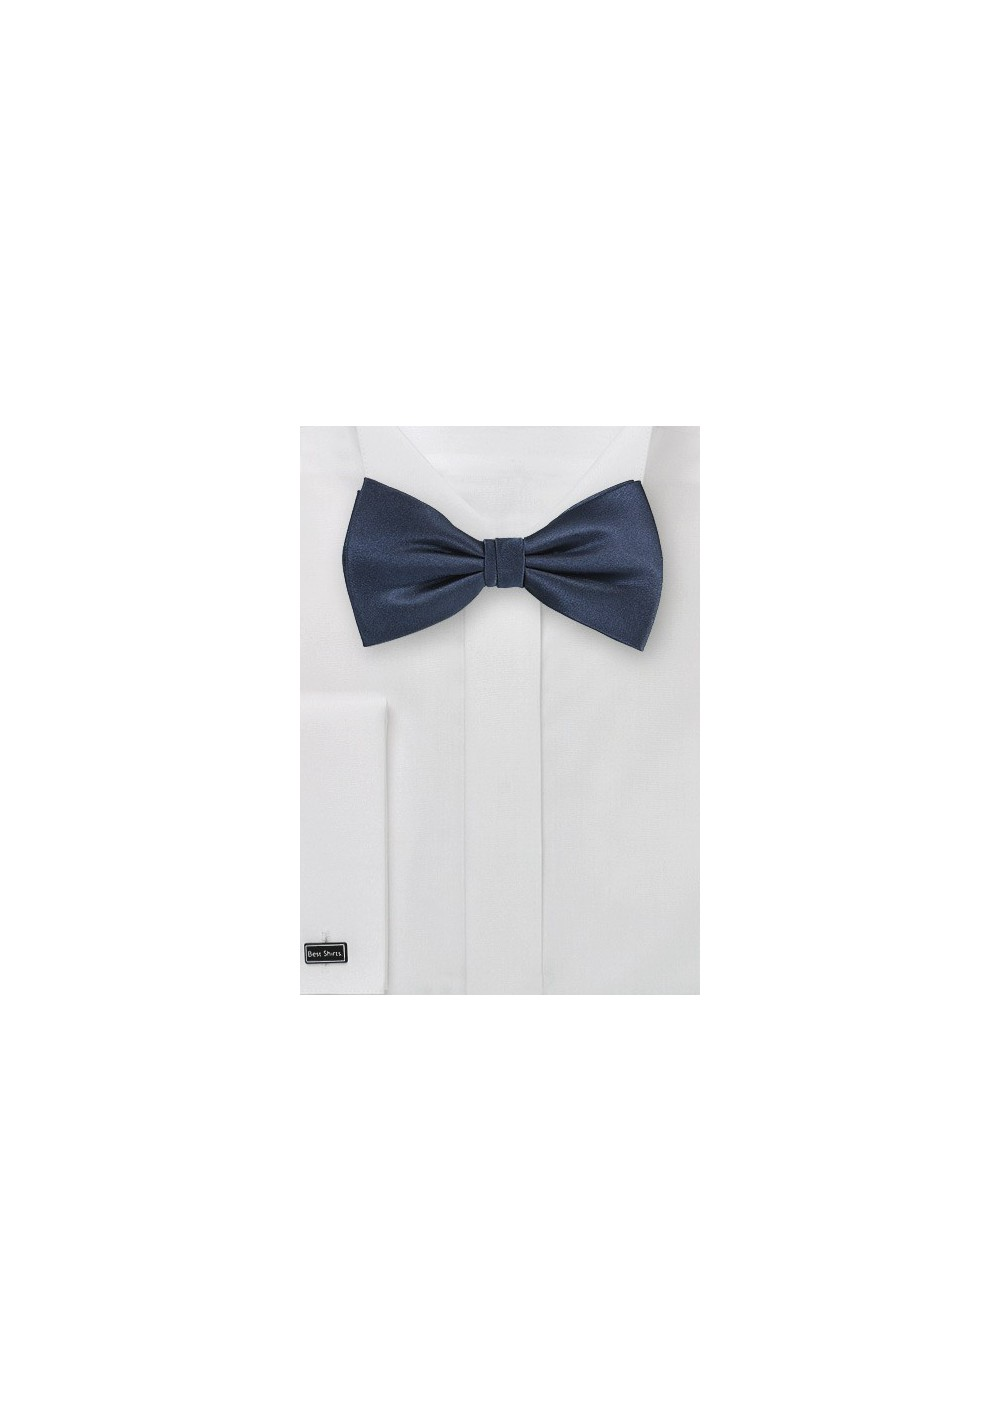 Dark Navy Colored Silk Bow Tie